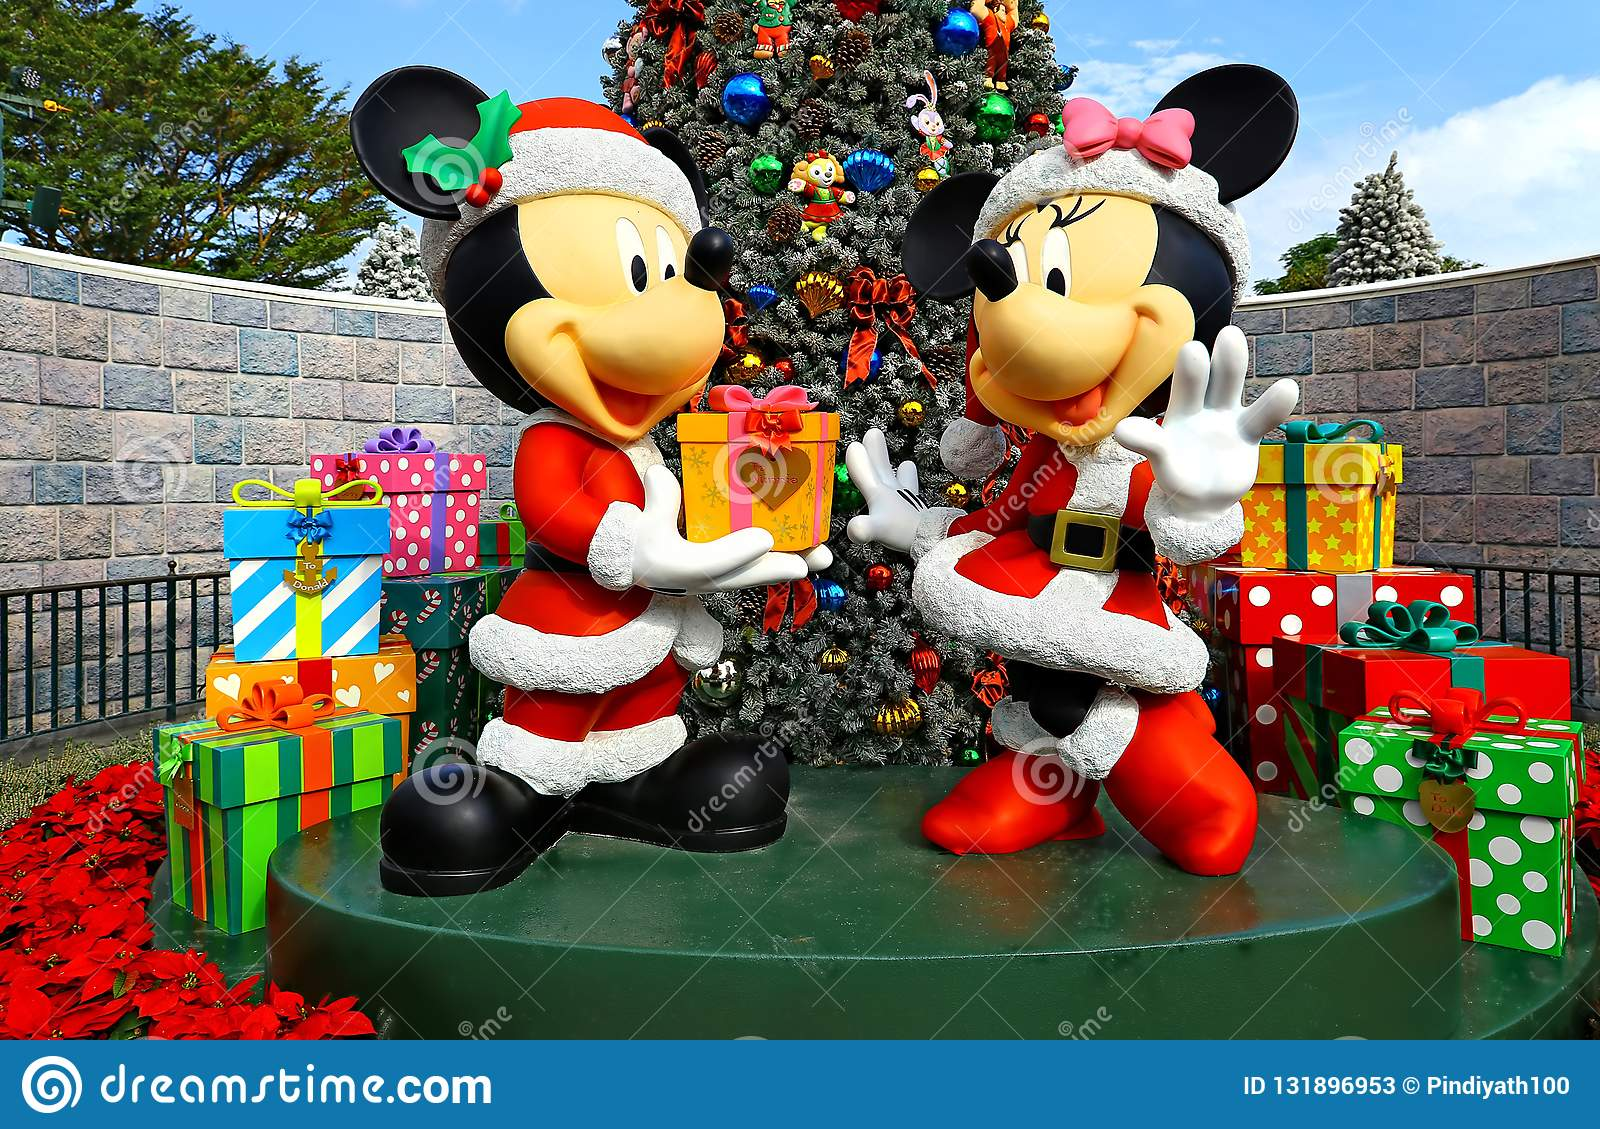 Christmas Minnie Mouse Disneyland.Mickey And Minnie Mouse Christmas Decor At Disneyland Hong